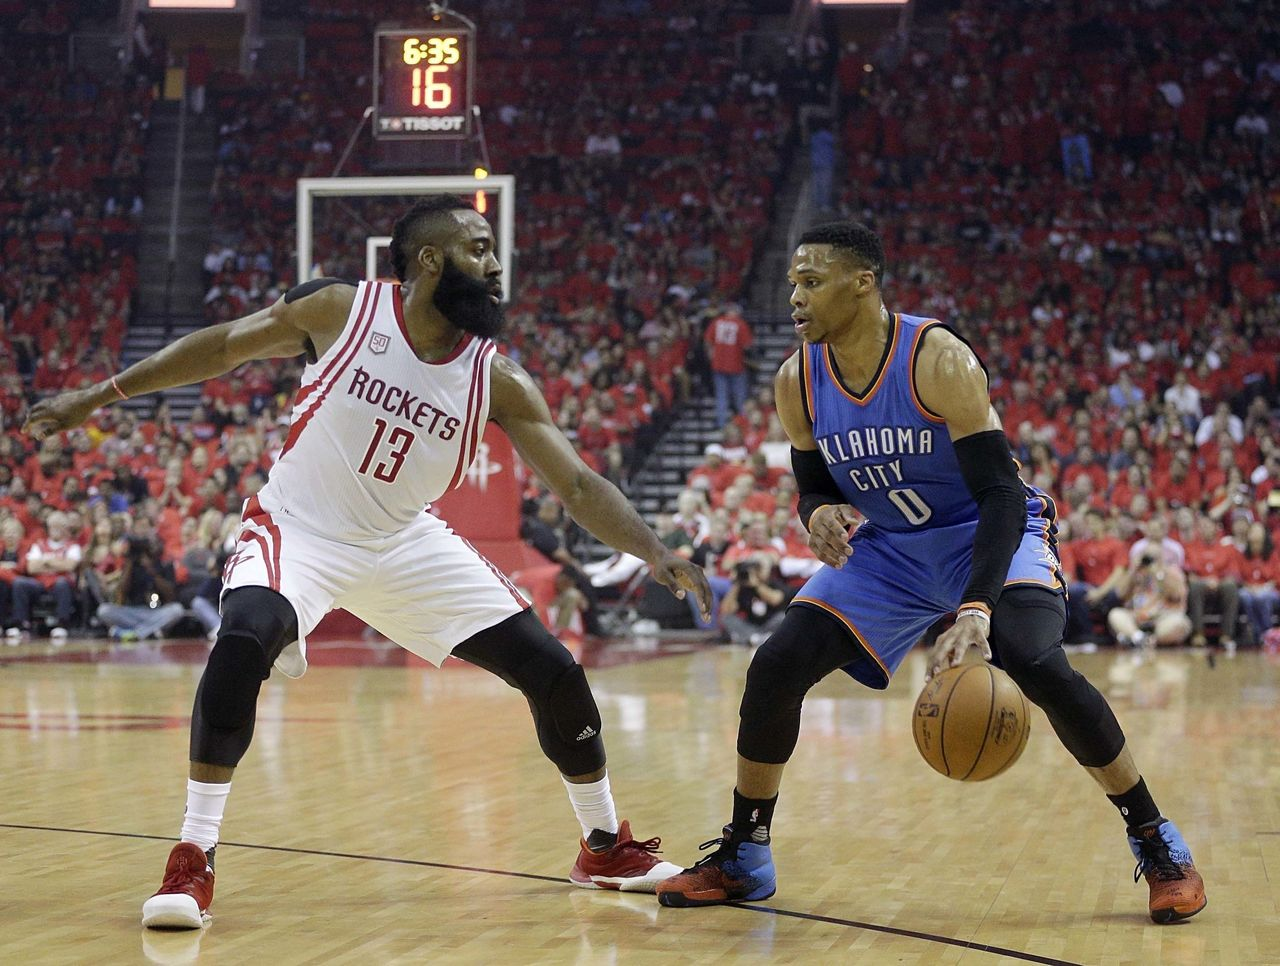 Cropped 2017 04 26t004552z 217209882 nocid rtrmadp 3 nba playoffs oklahoma city thunder at houston rockets